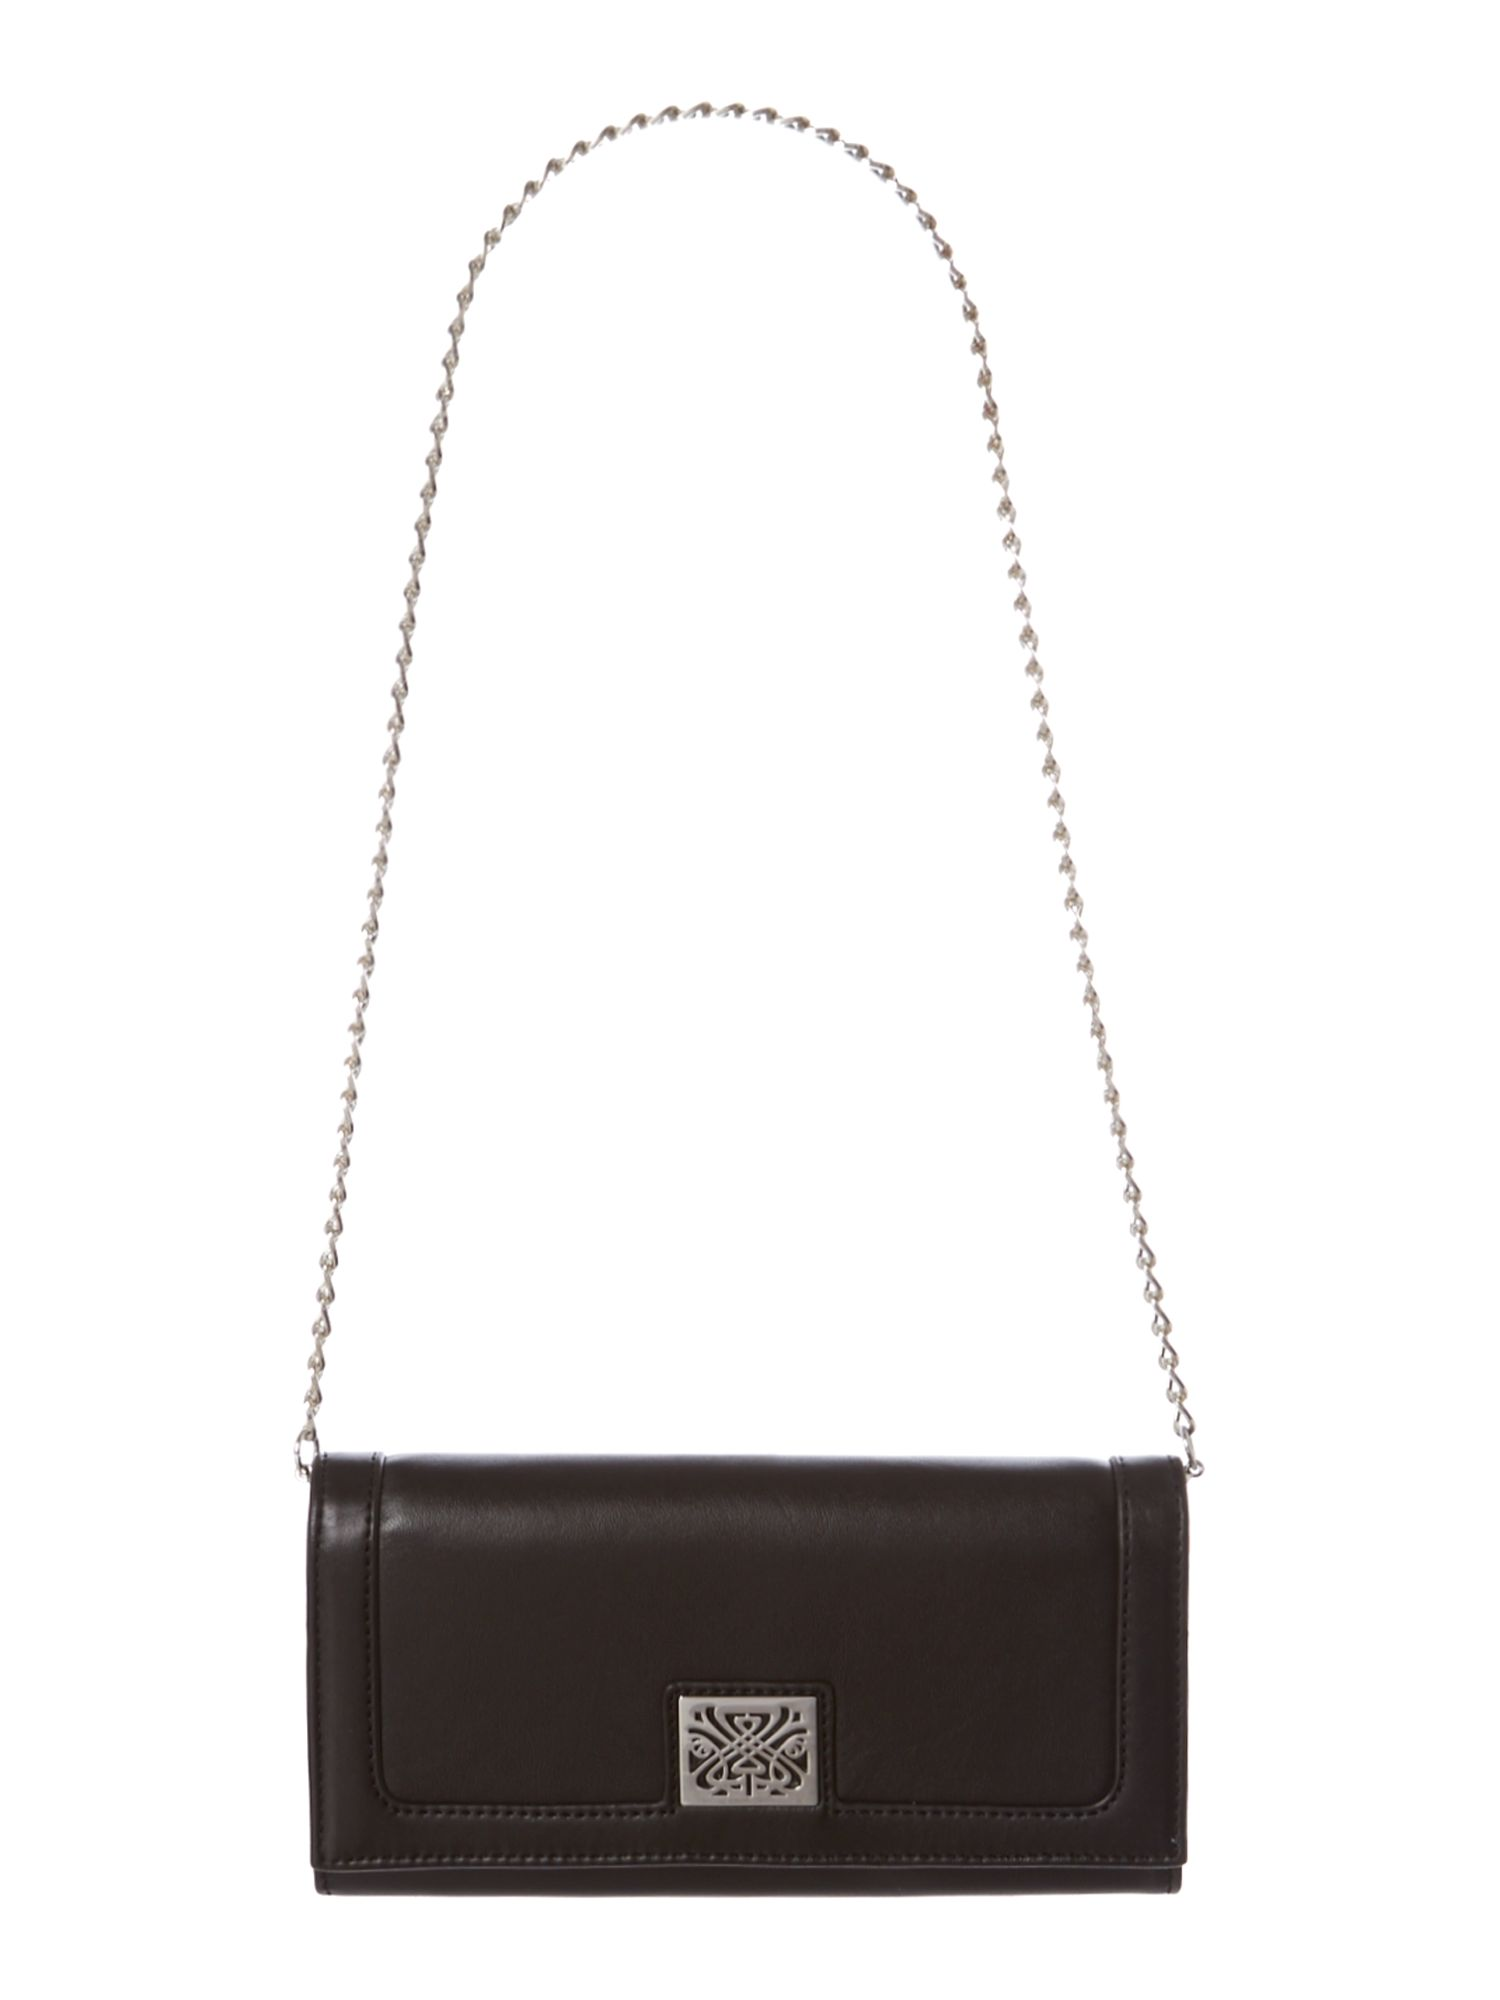 Alexandra flap over chain purse